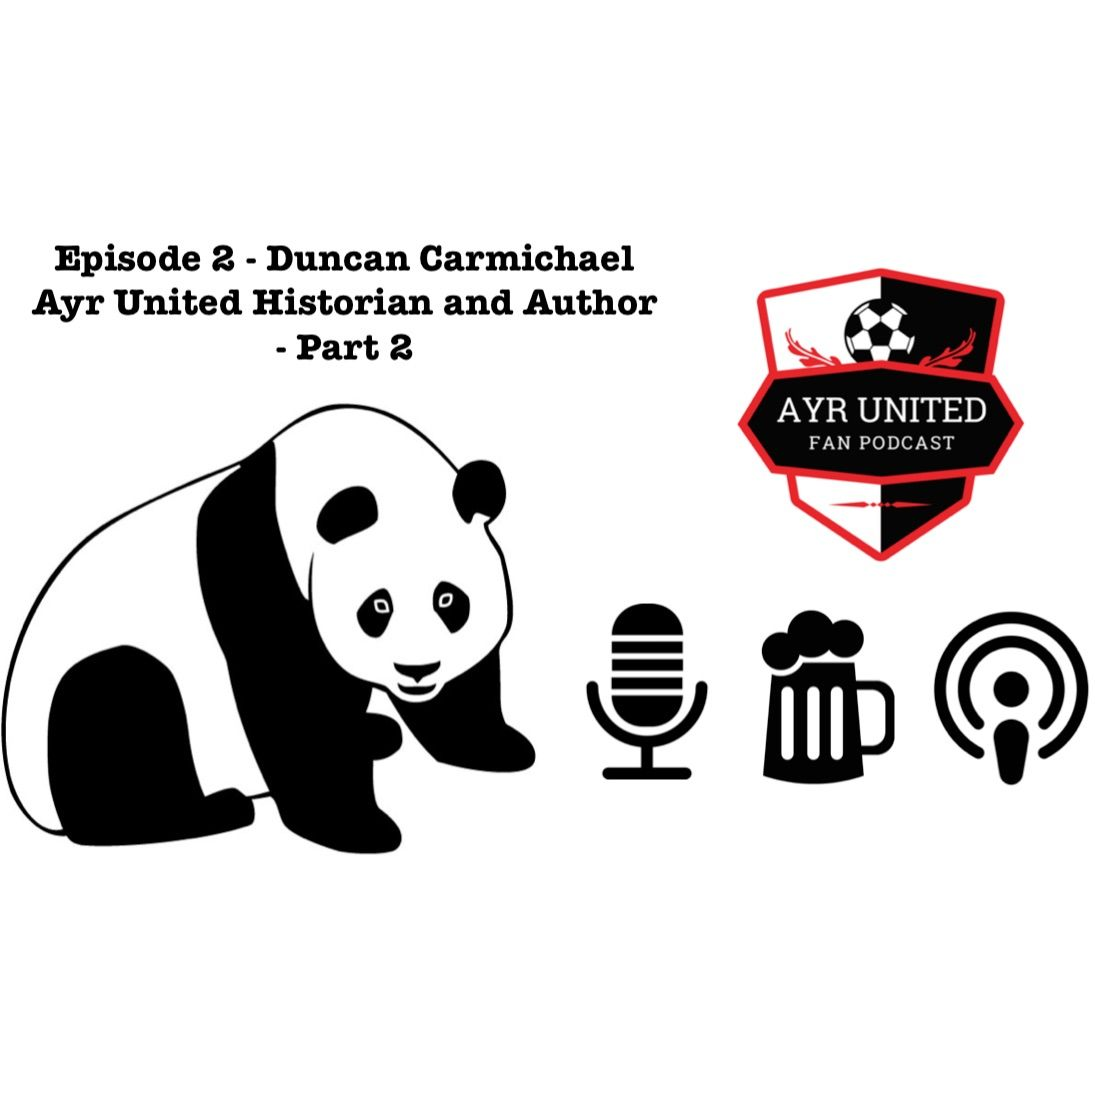 Part 2 Episode 2 - Duncan Carmichael Ayr United Historian and Author - Ayr United Fan Podcast